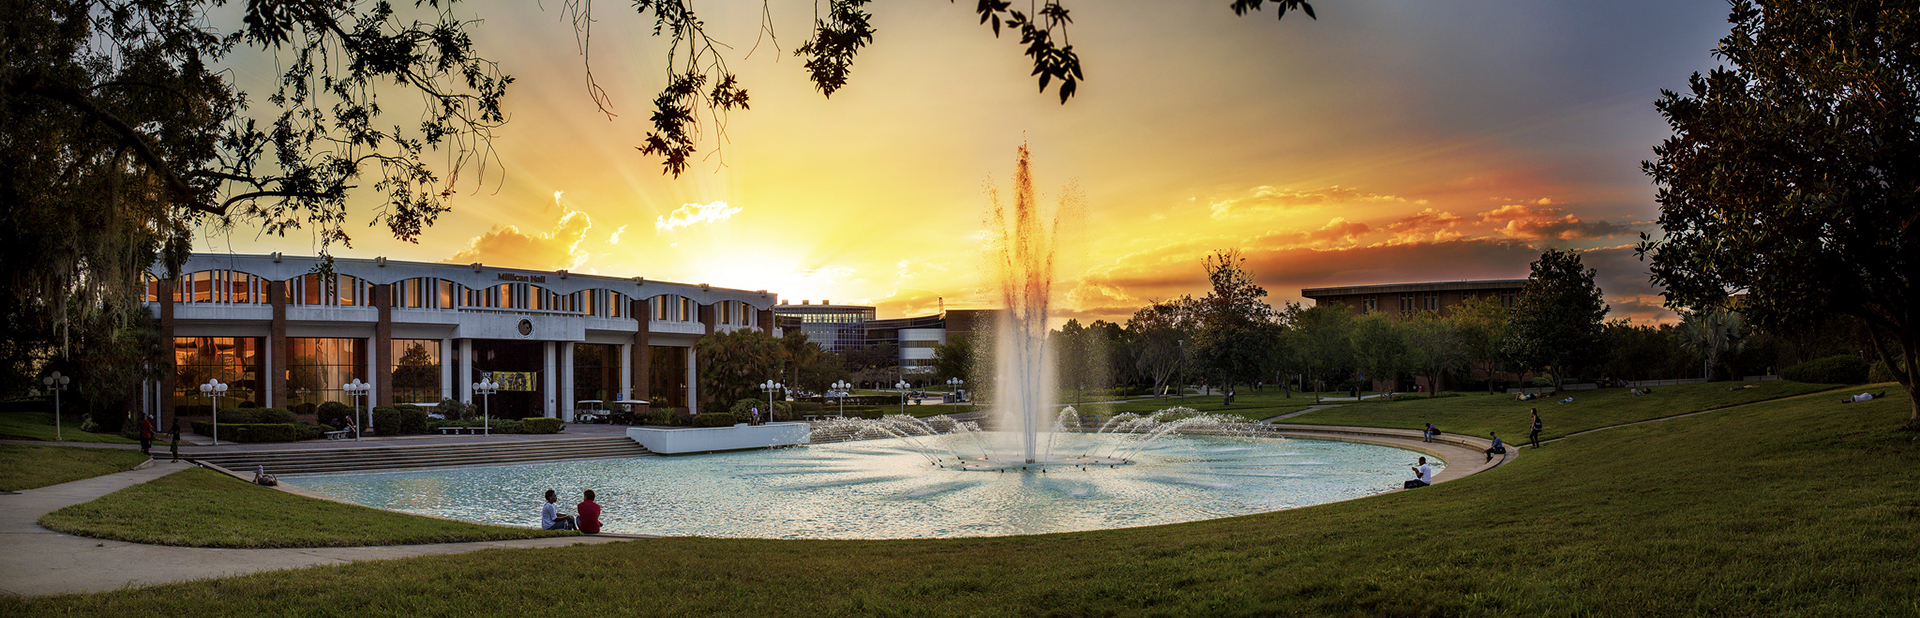 UCF University of Central Florida Campus